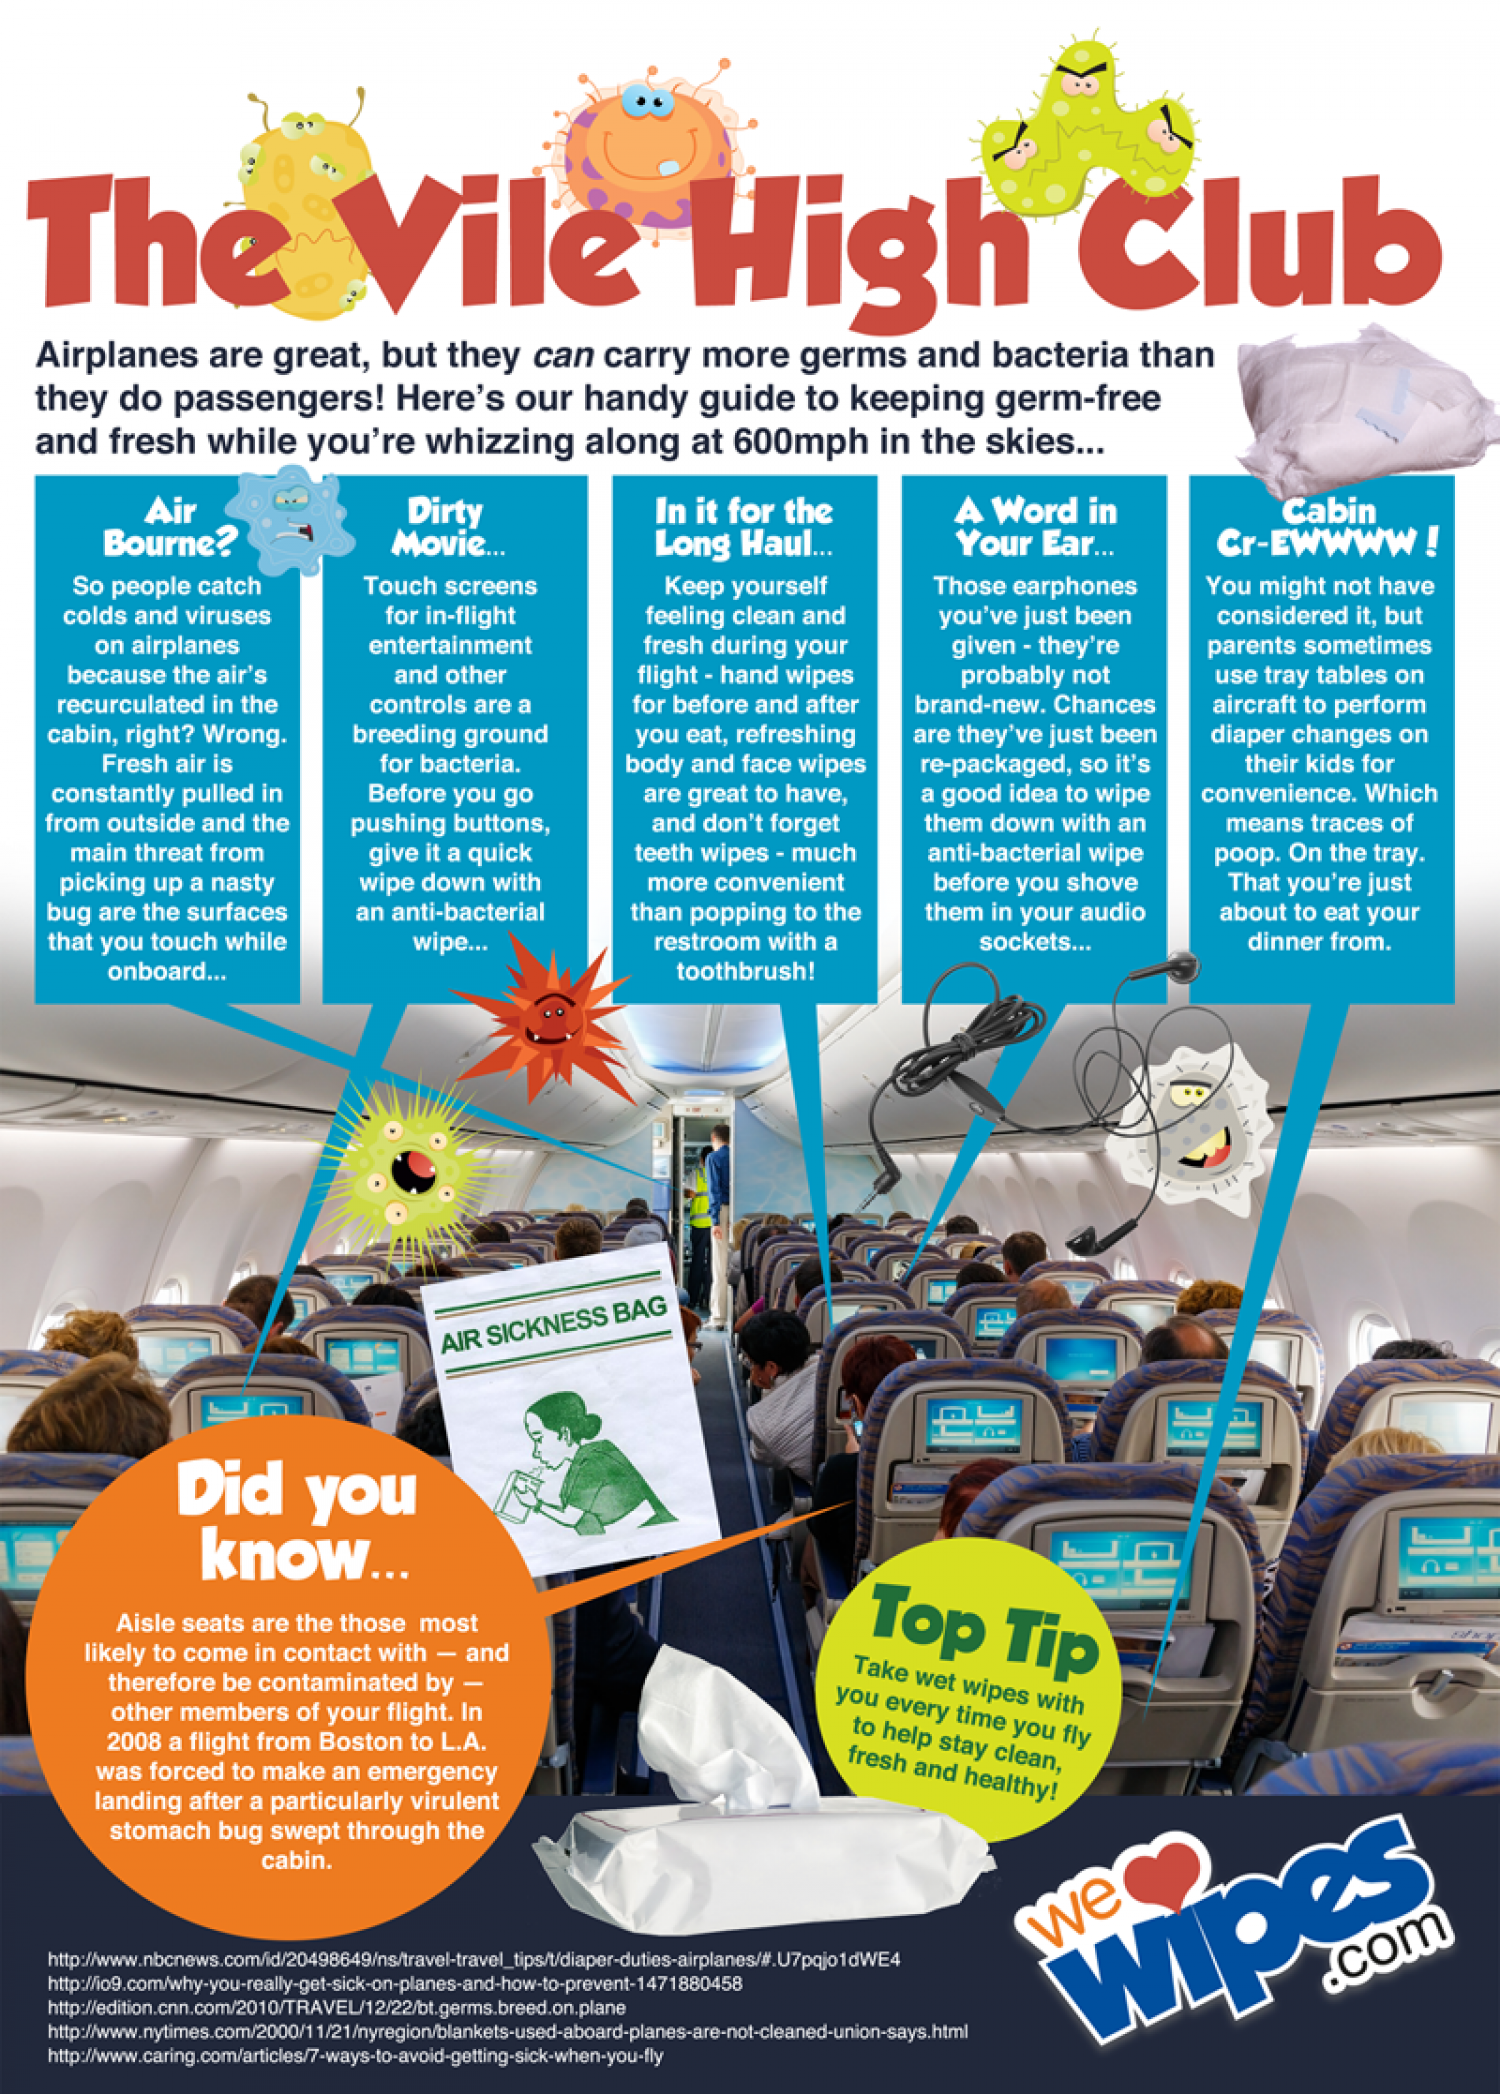 Welcome to the Vile High Club! Infographic